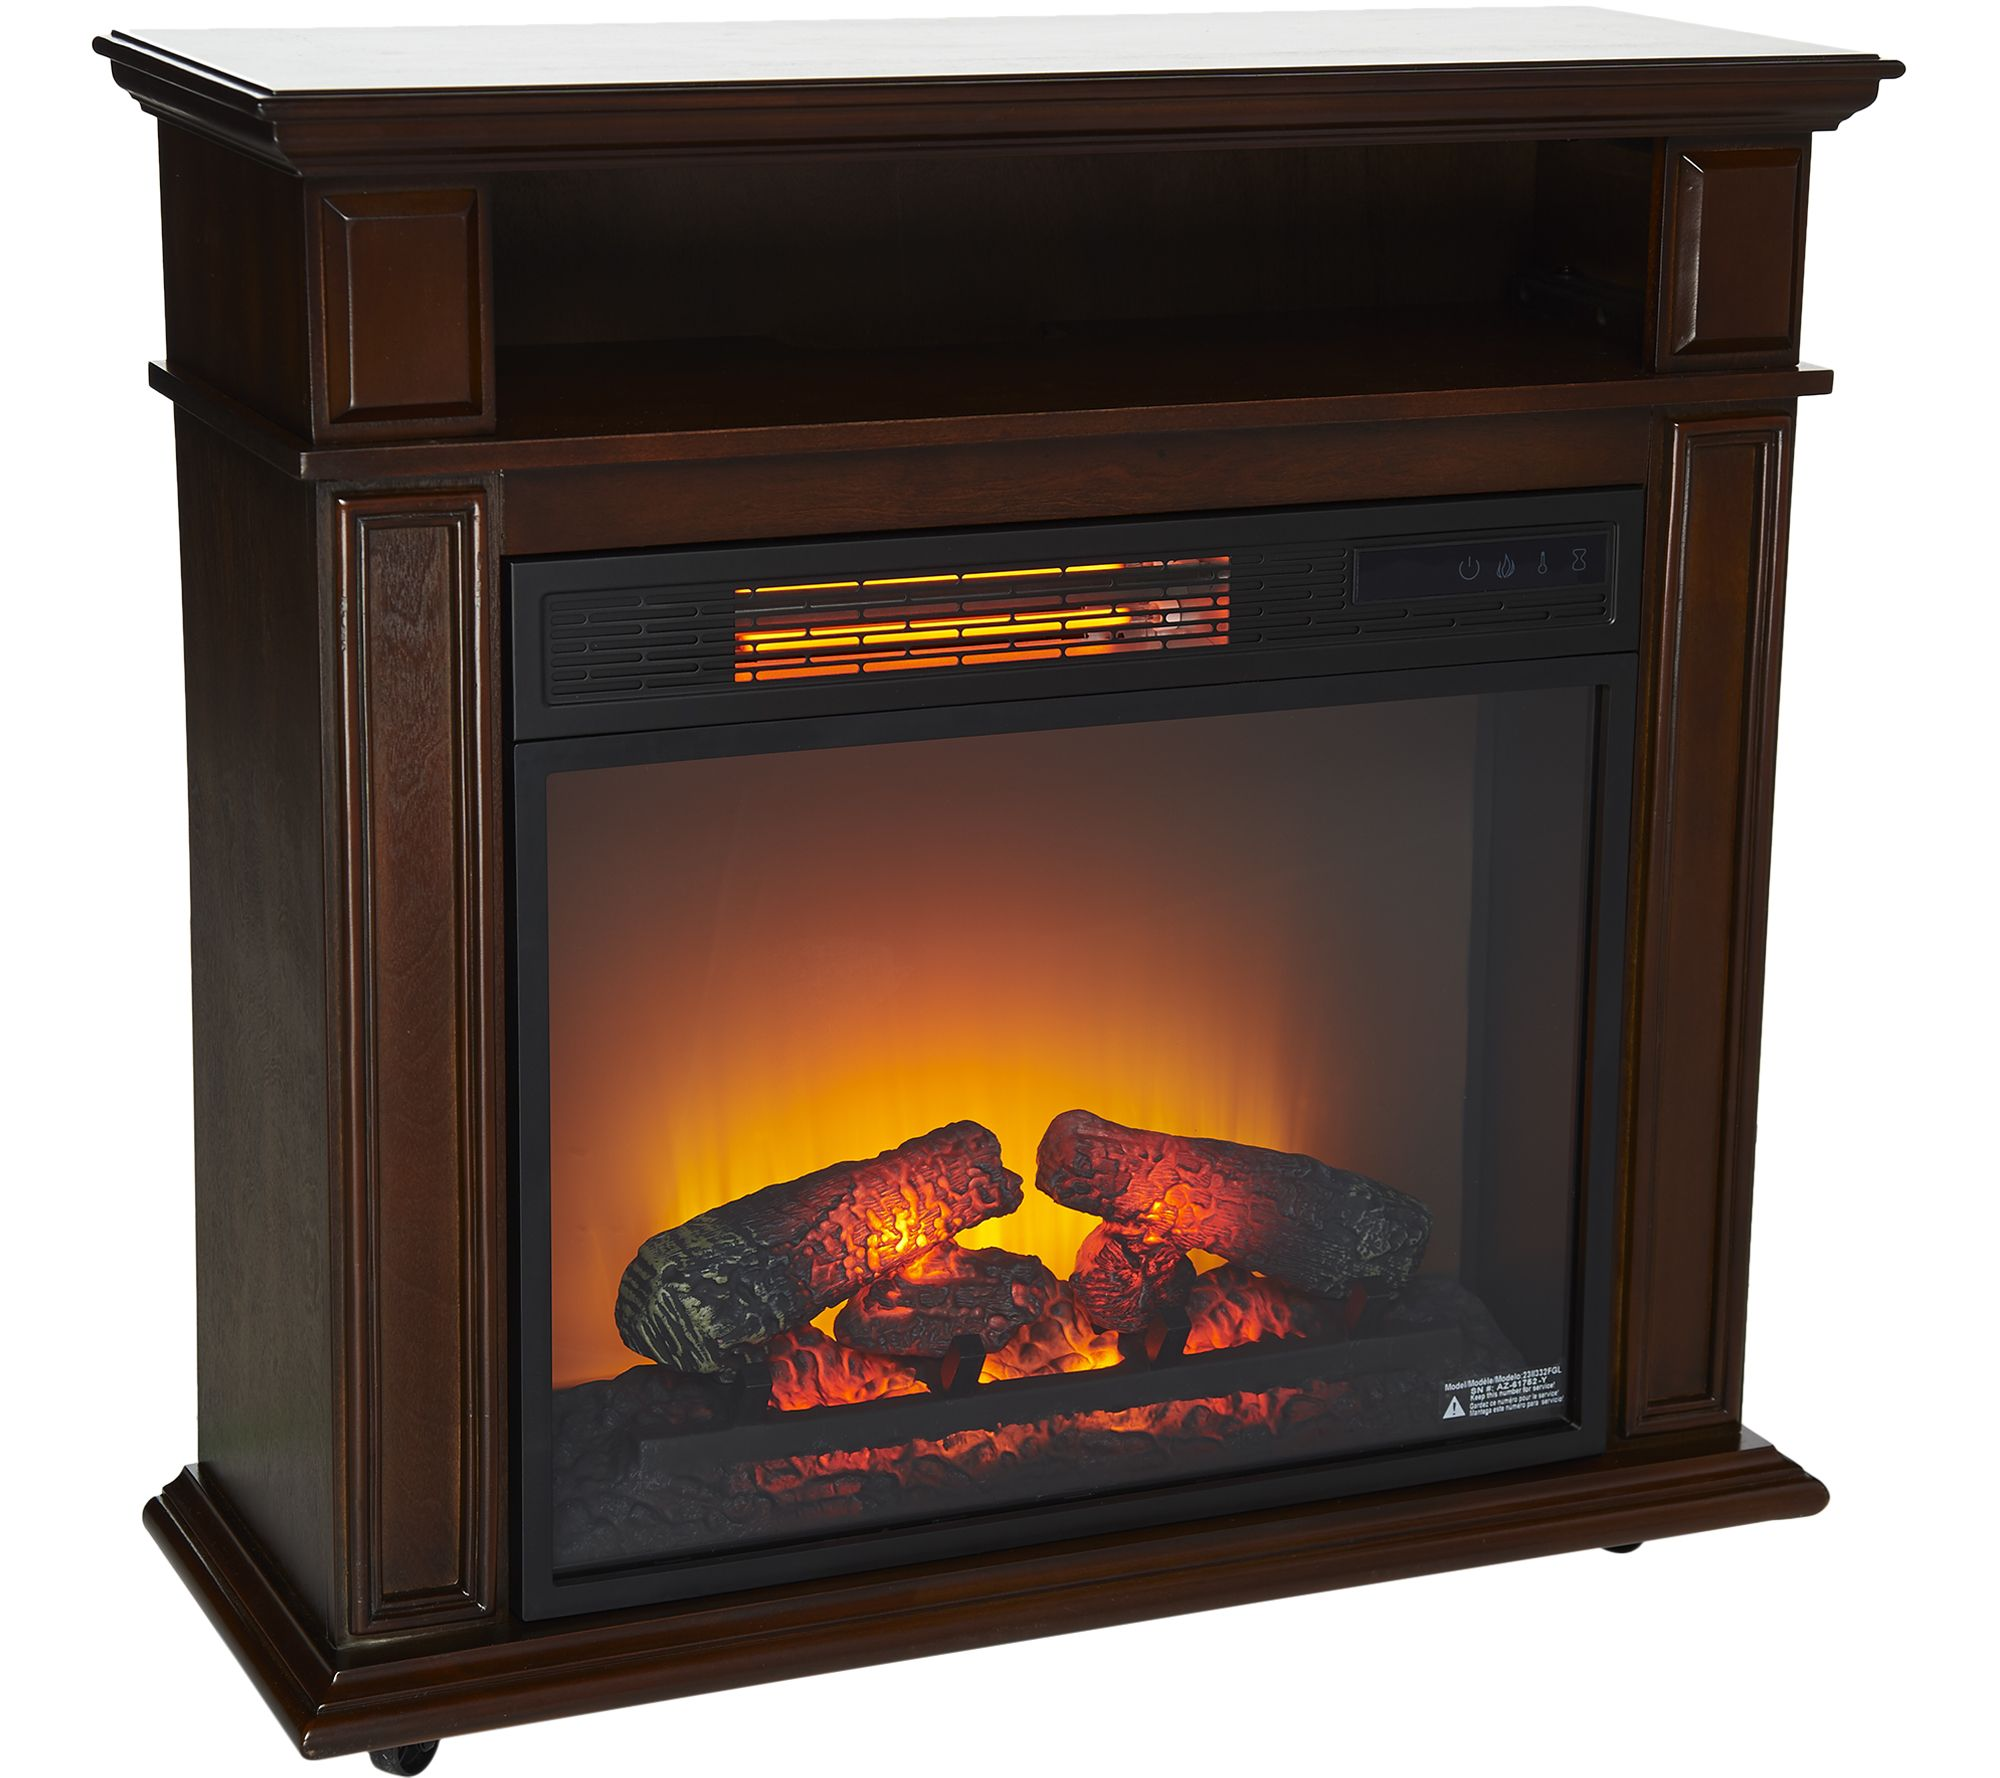 nyc room ethanol bio blk fireplaces and productgallery ventless outdoor artistic gas corner napoleon design kitchens fireplace